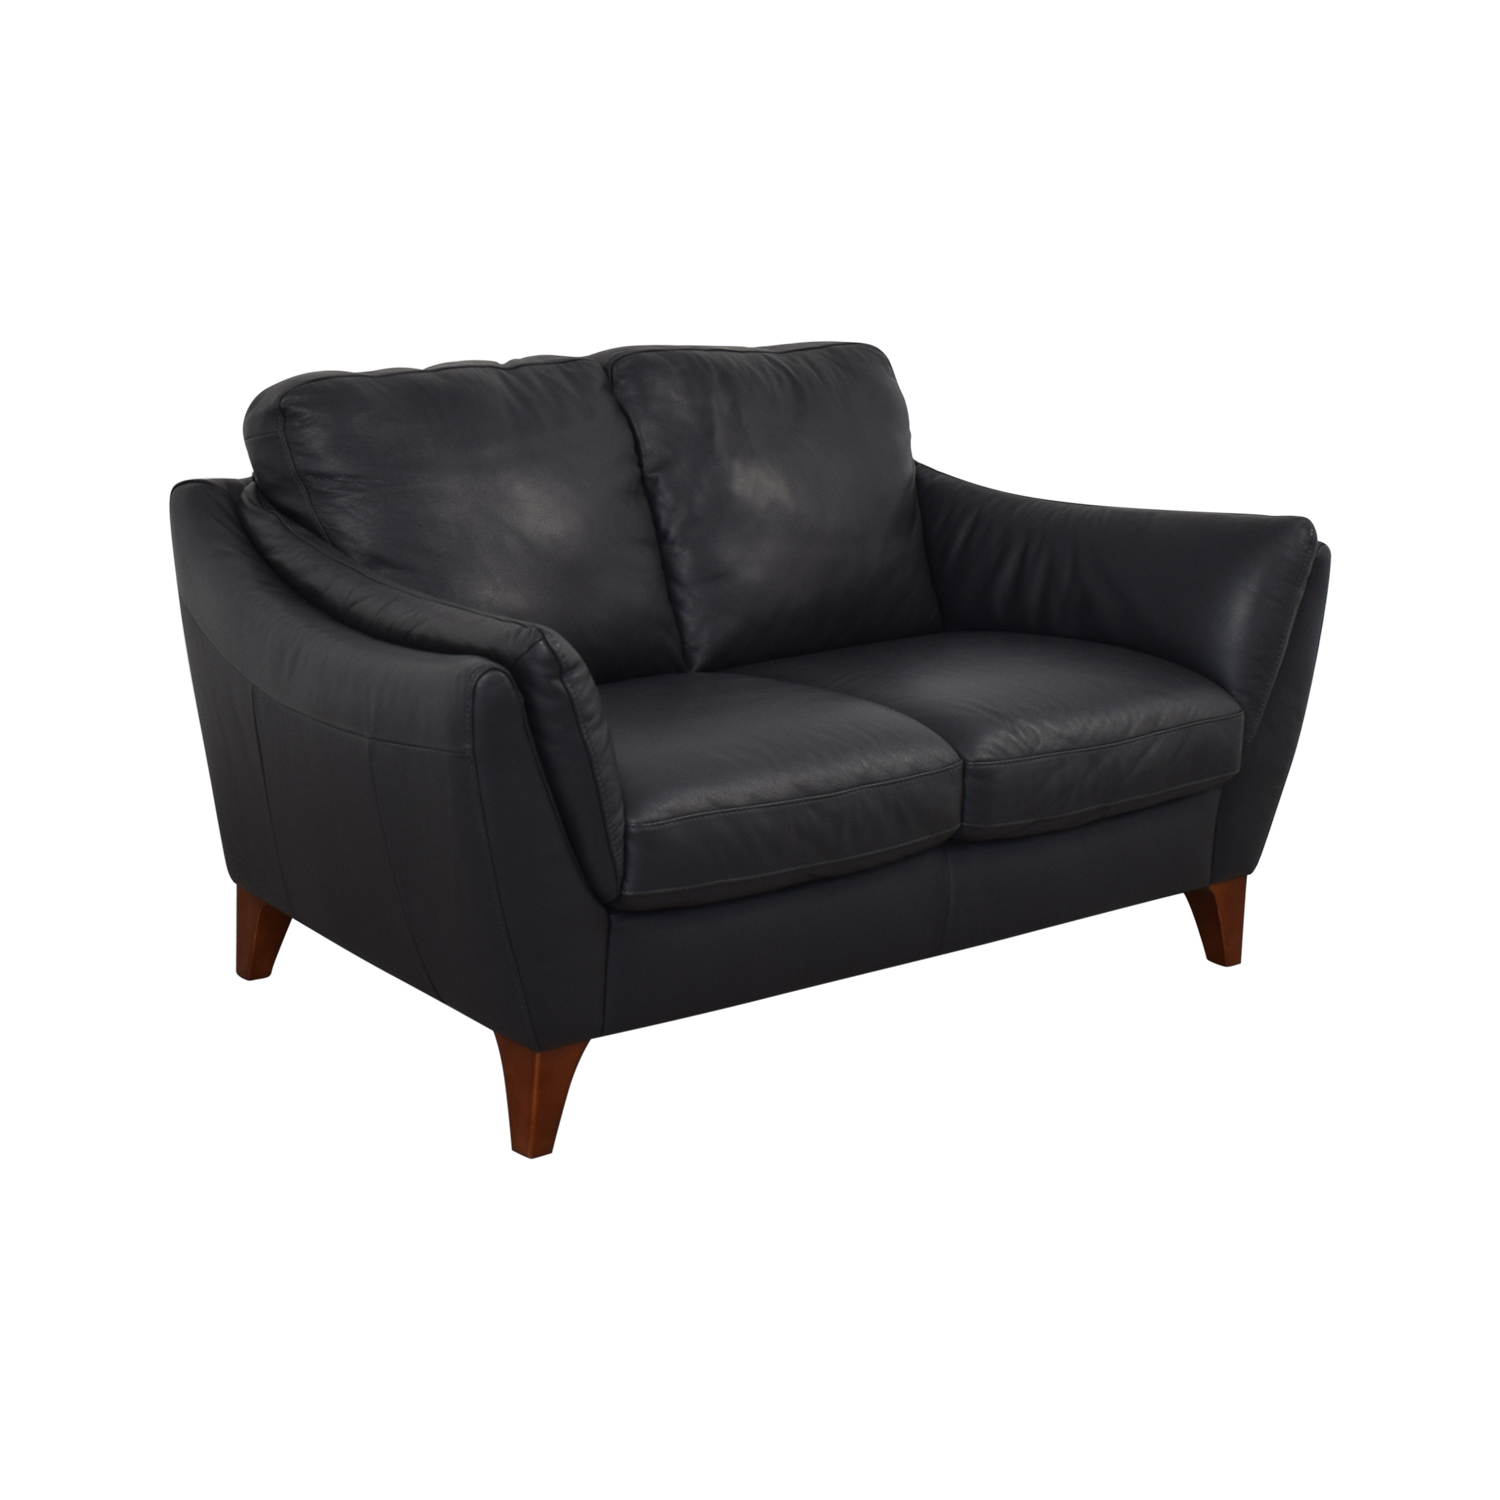 buy Raymour & Flanigan Greccio Leather Loveseat Raymour & Flanigan Loveseats